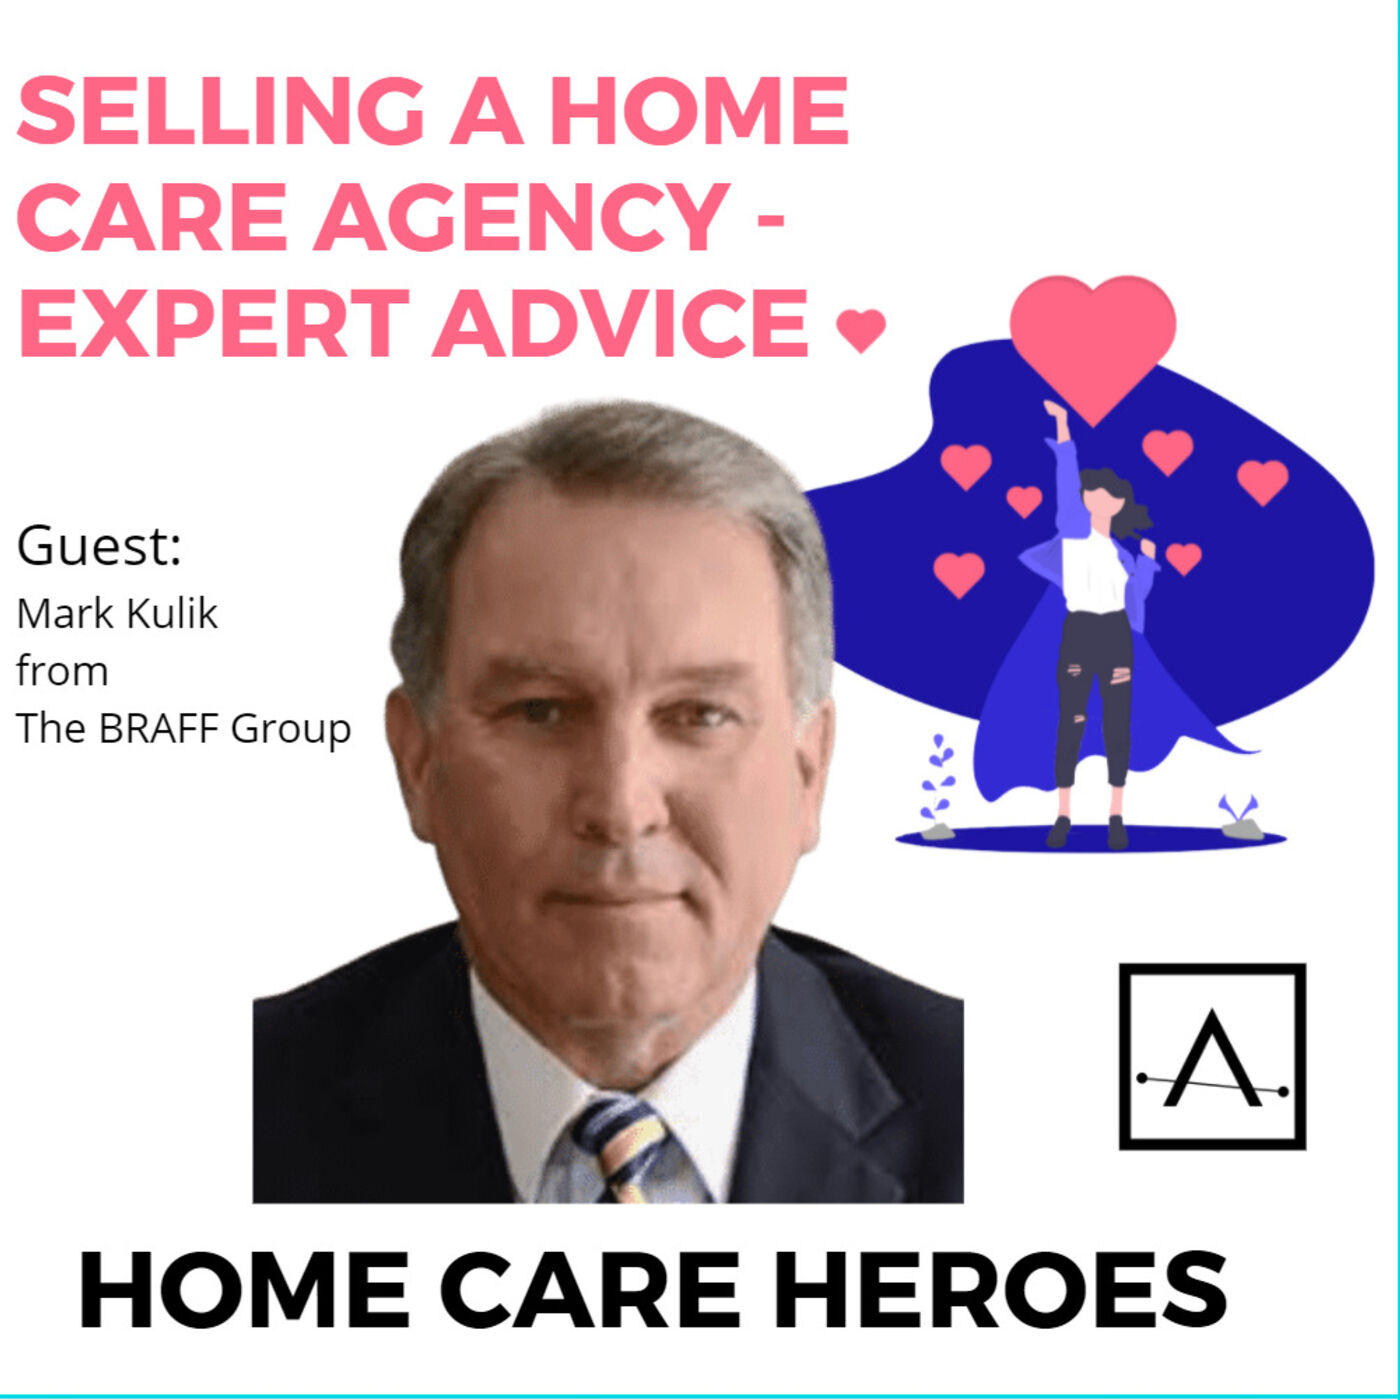 Selling a Home Care Agency - Expert Advice with Mark Kulik from The BRAFF Group (rebroadcast)